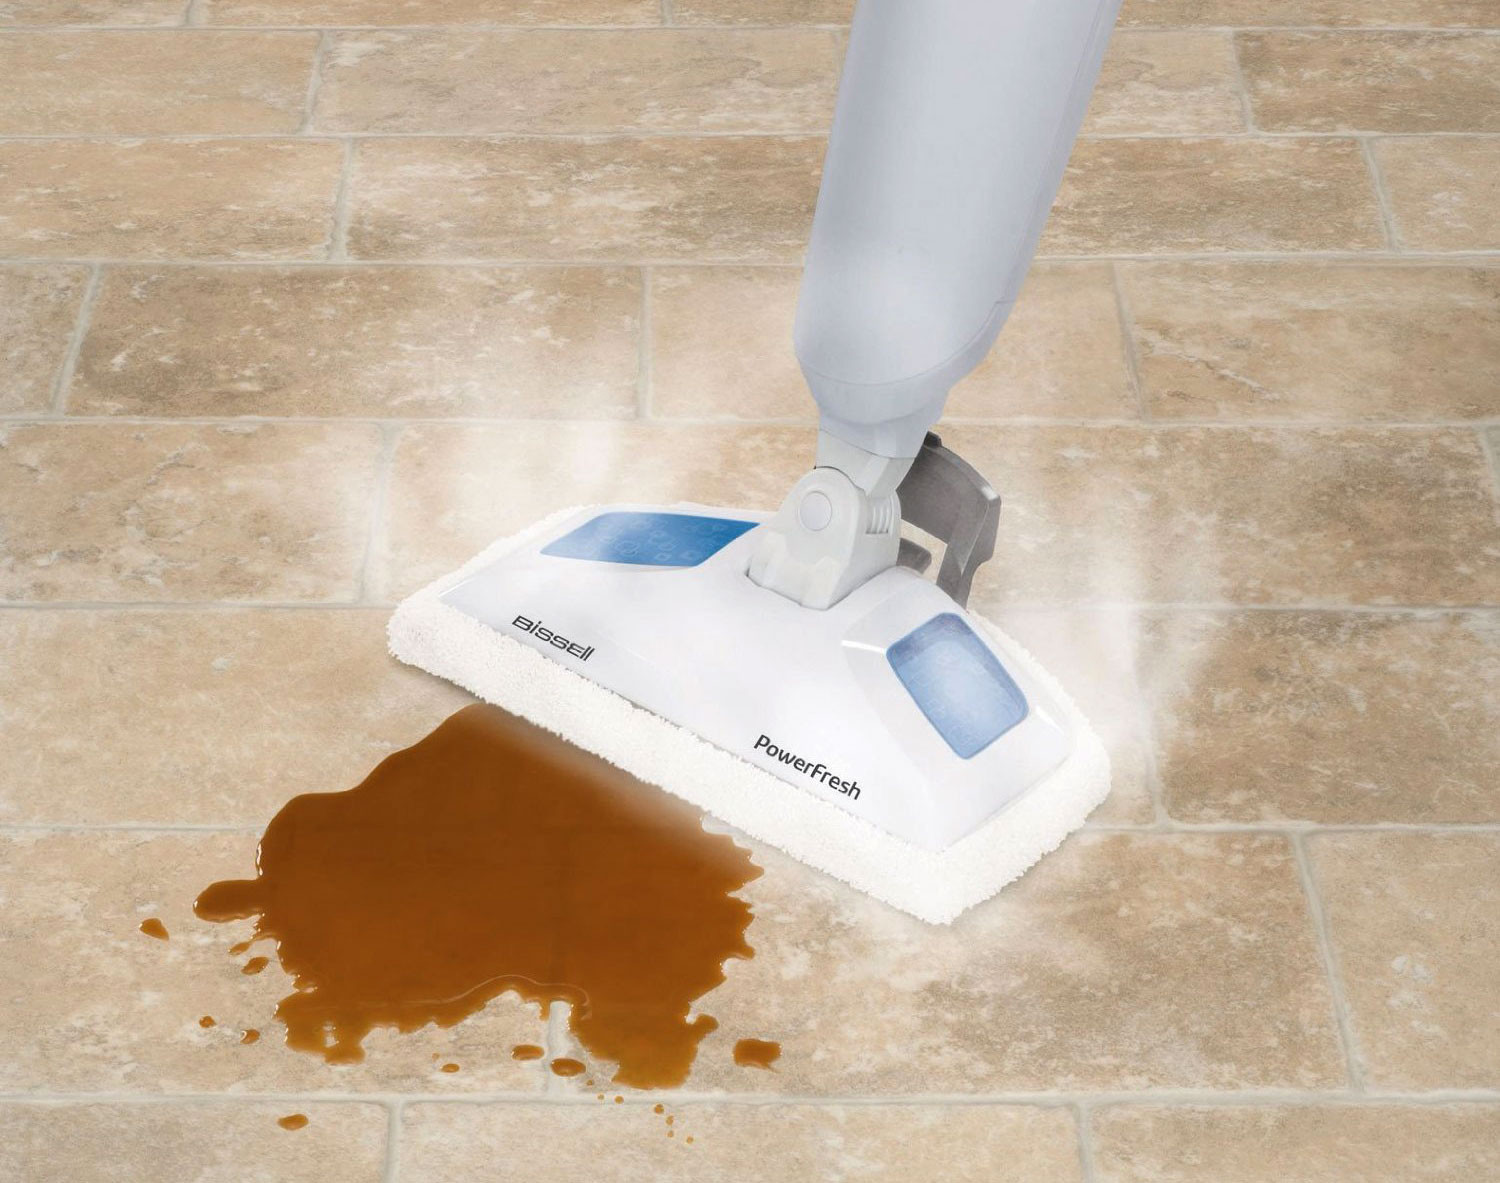 New Hardwood Floor Vacuum Of the 4 Best Steam Mops Inside A3e8dac8 Fd9f 4940 Ad99 8094ad1403c3 811cn2sa0wl Sl1500